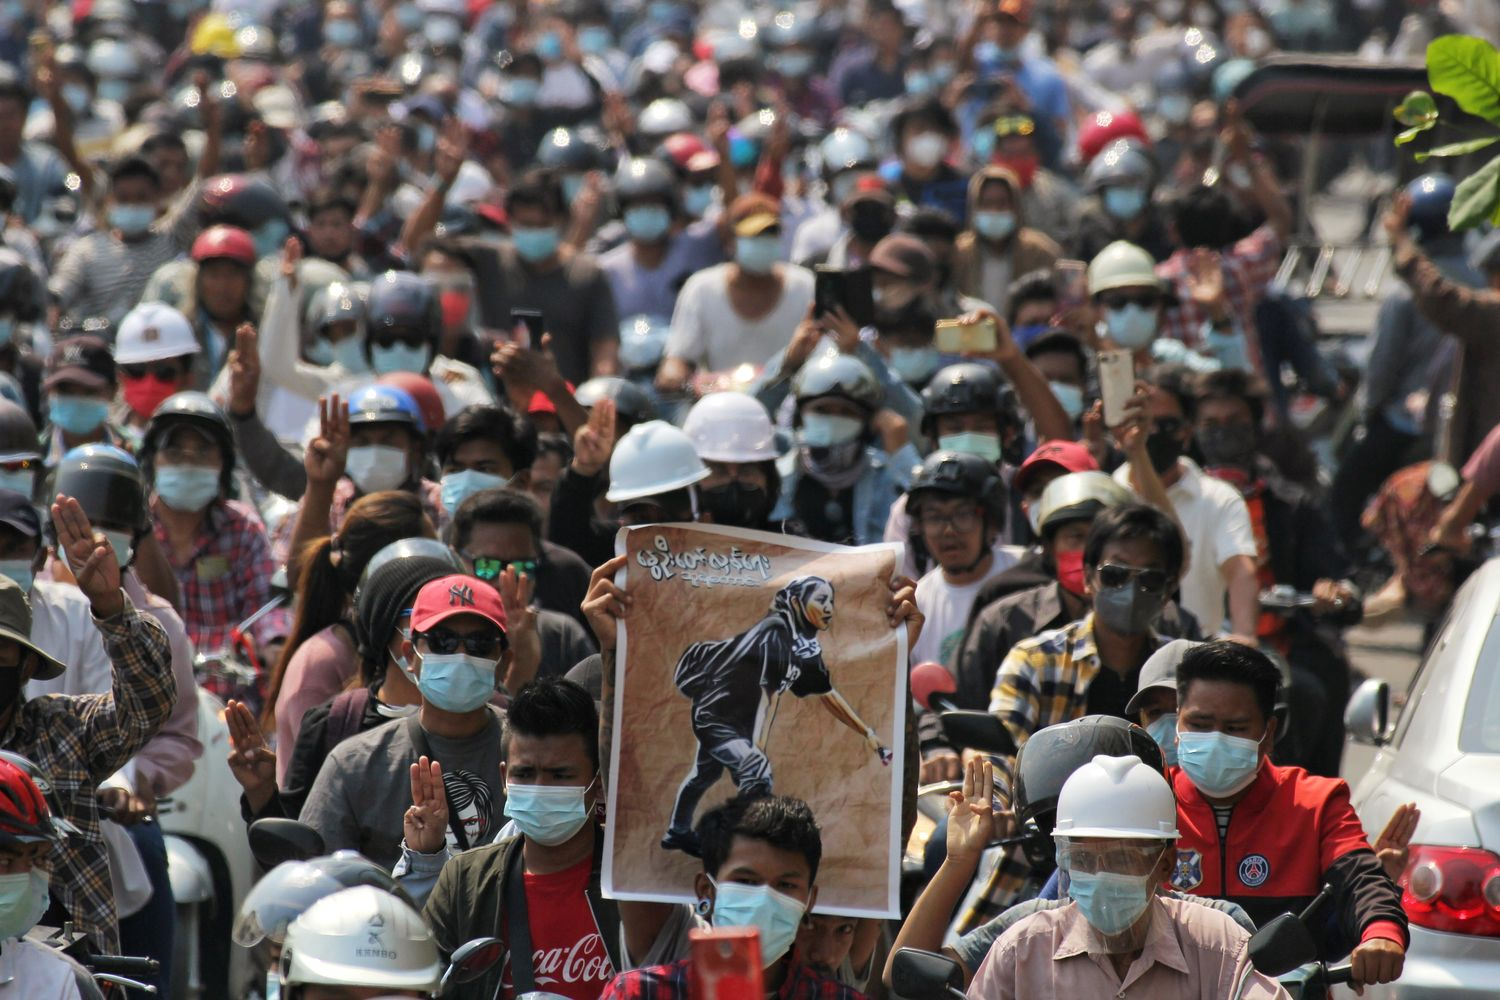 People attend the funeral of Angel a 19-year-old protester also known as Kyal Sin who was shot in the head as Myanmar forces opened fire to disperse an anti-coup demonstration in Mandalay, Myanmar, on Thursday. (Reuters photo)